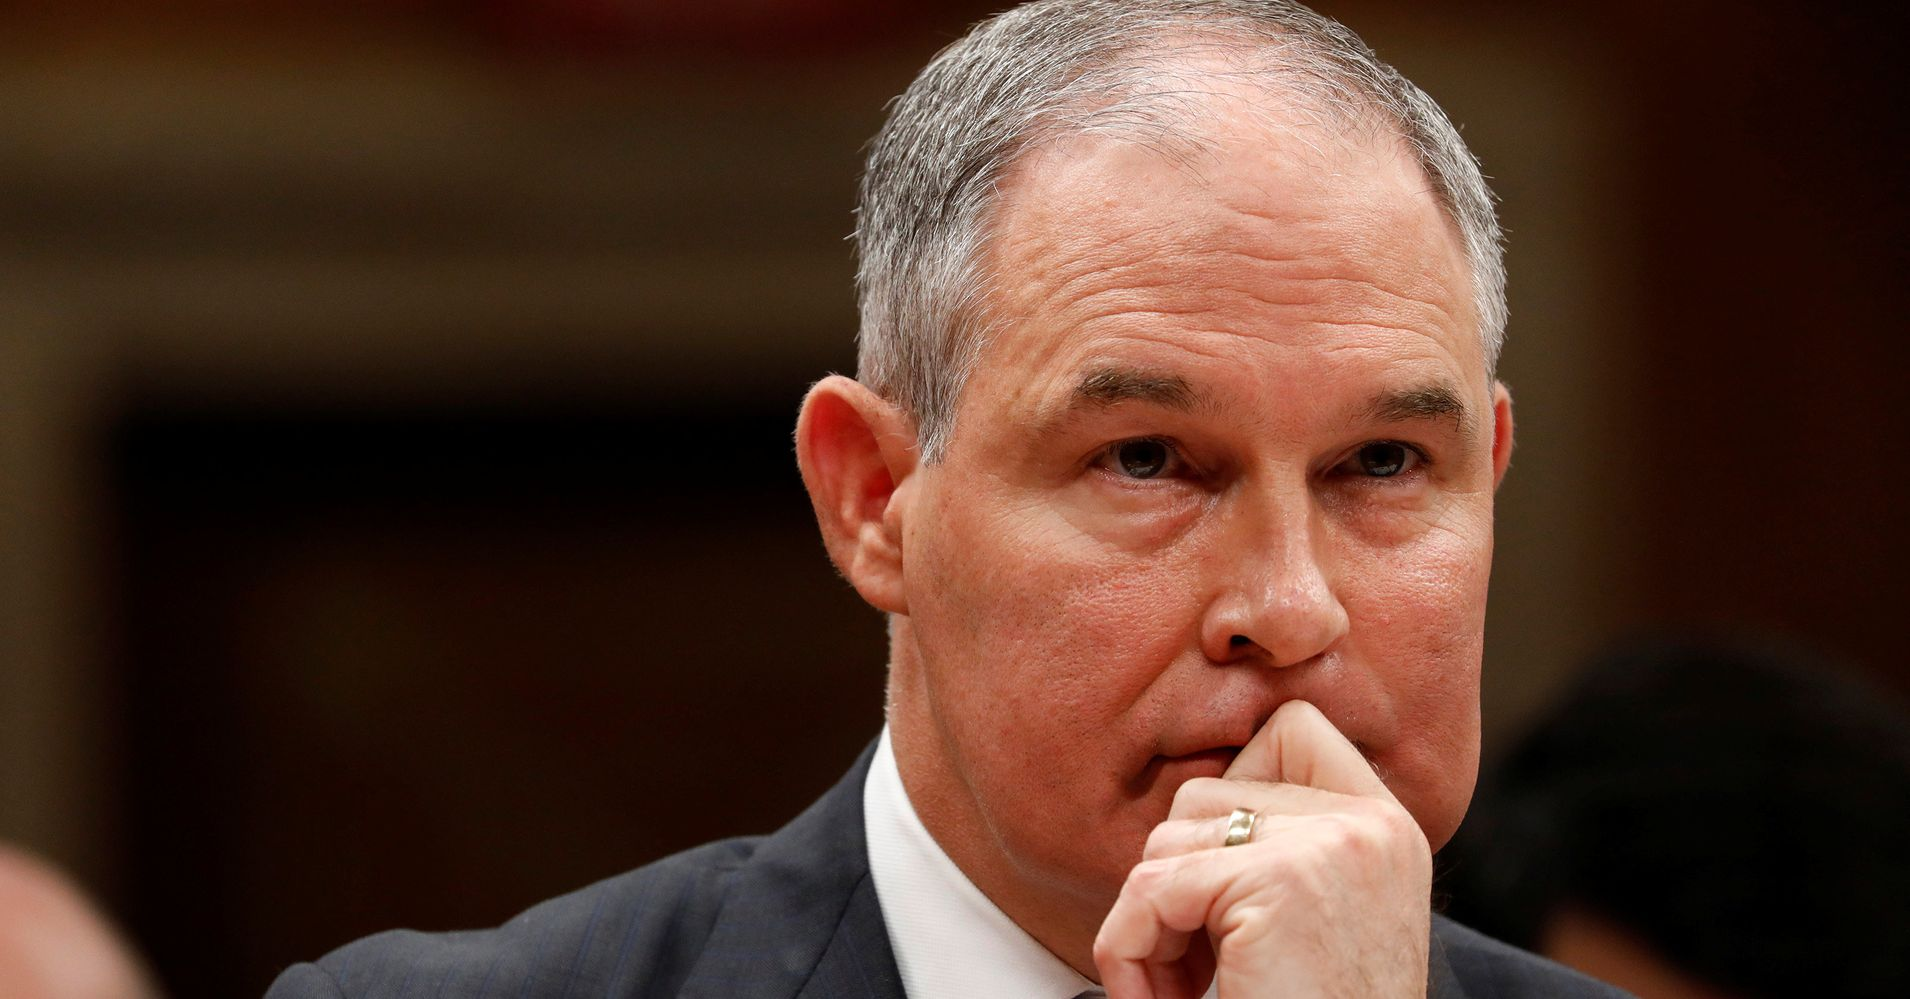 Scott Pruitt Resigns From The EPA Amid Ethics Scandals